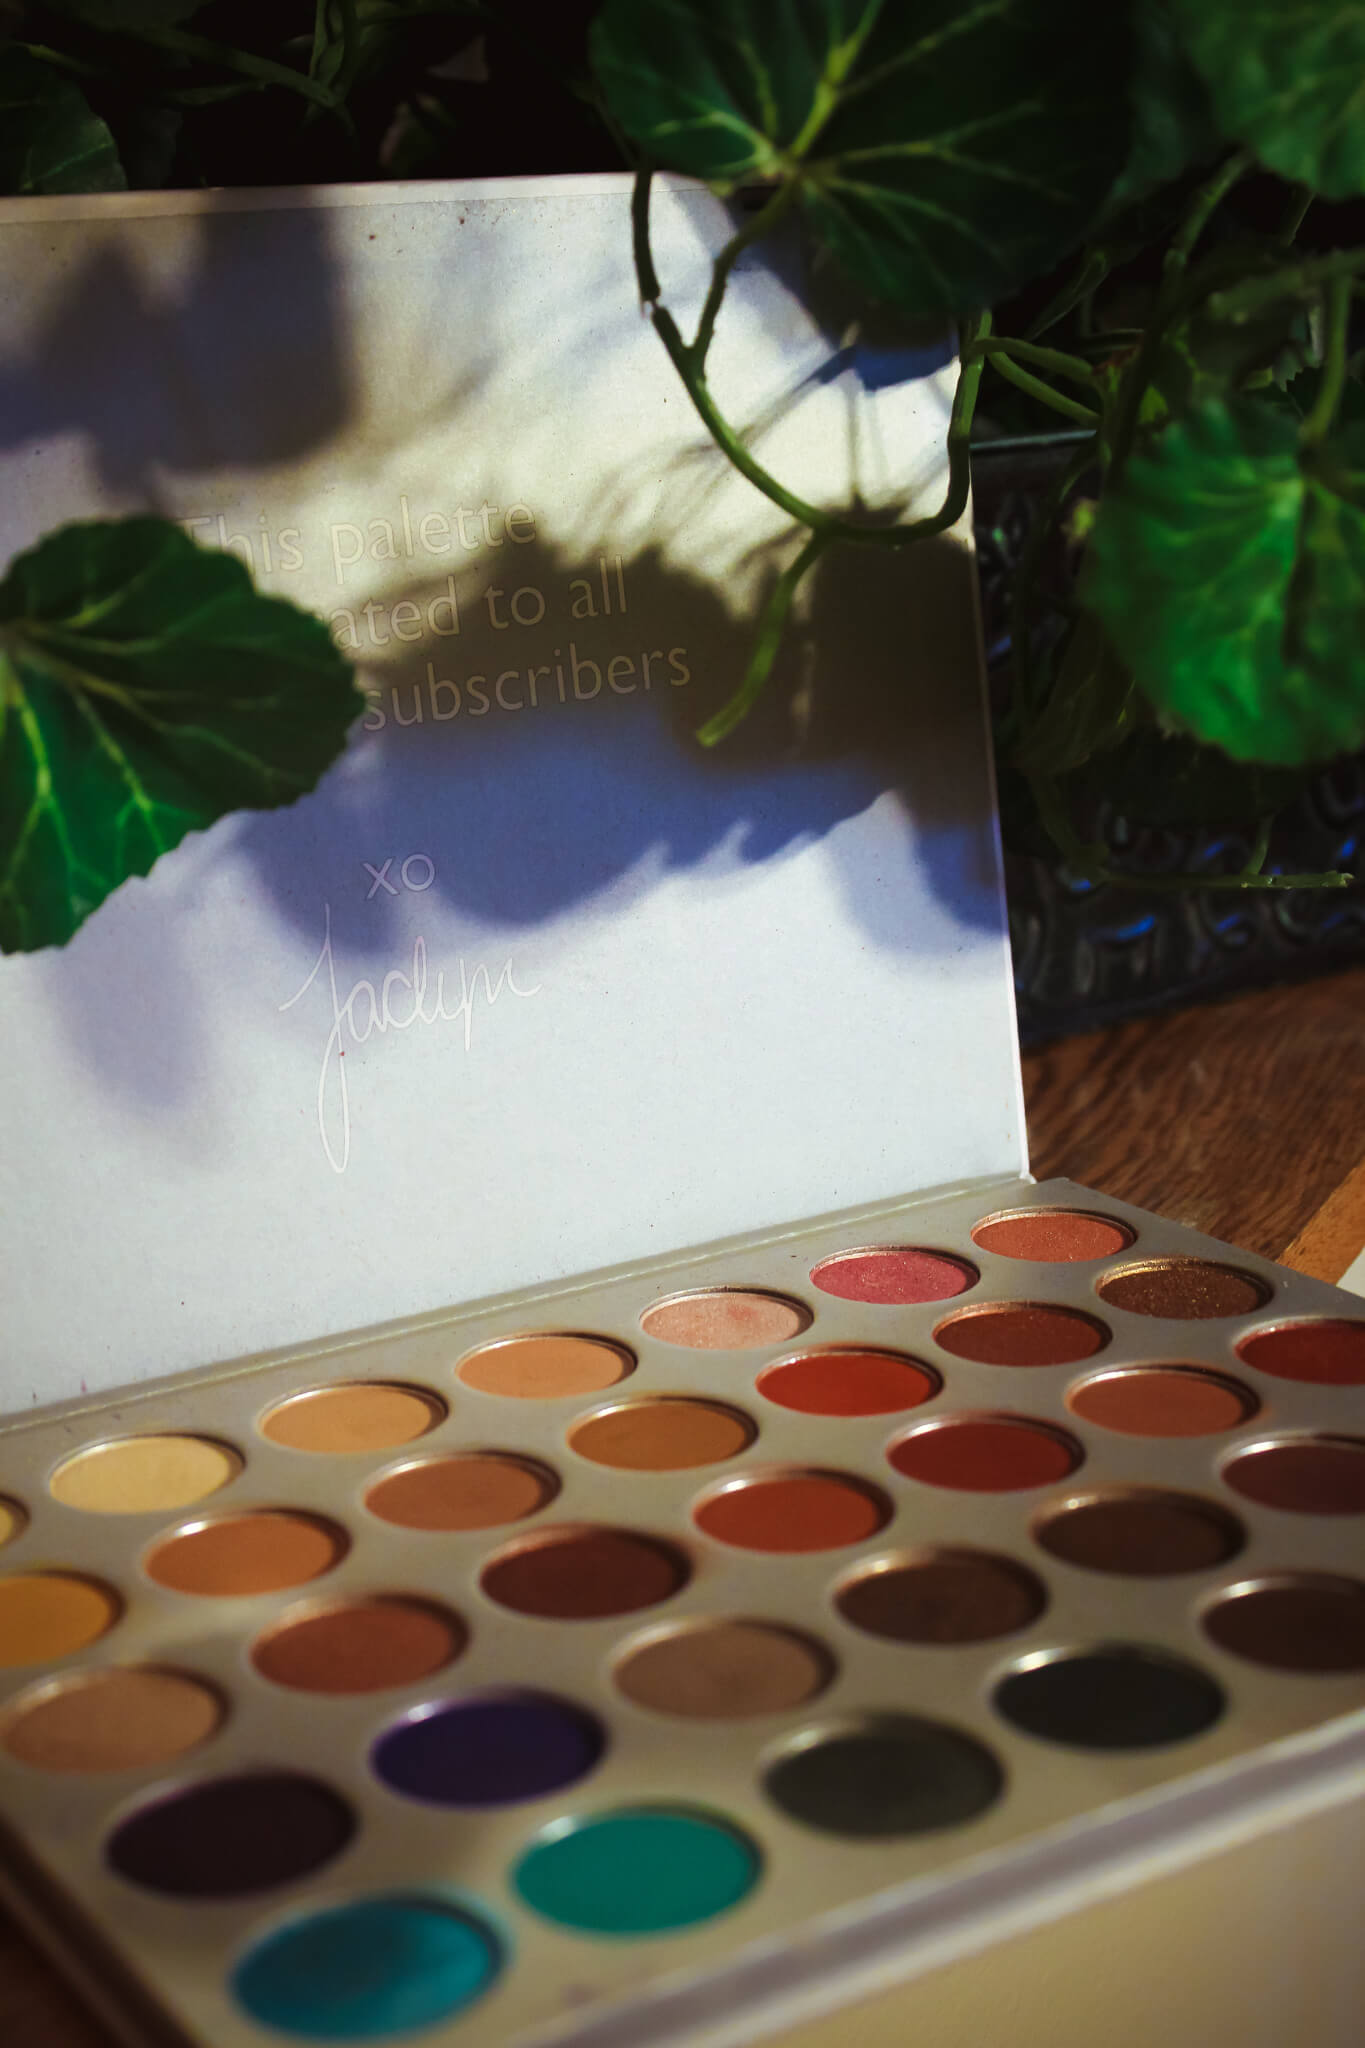 Did Morphe Change the Formula on the Original Jaclyn Hill Palette? 2